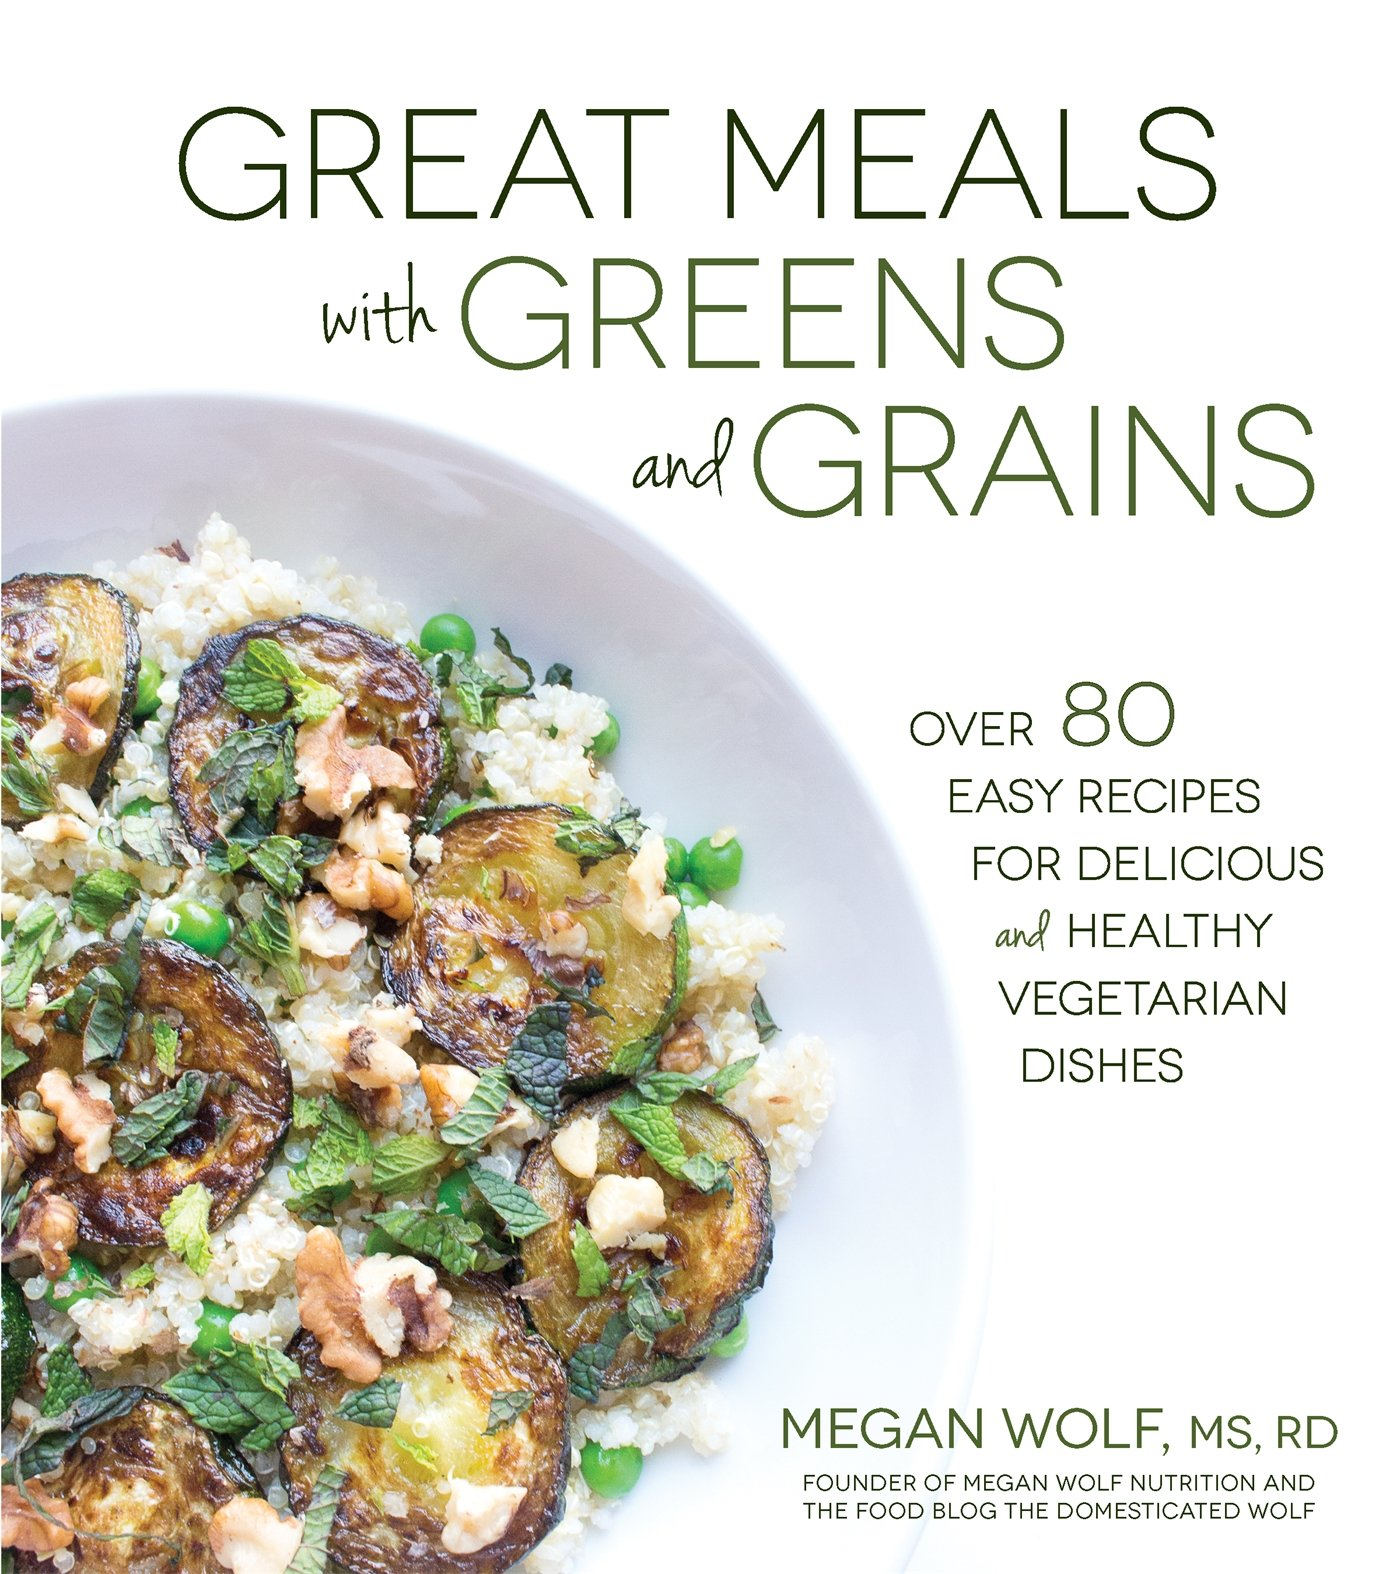 great meals with greens and grains over 80 easy recipes for delicious and healthy vegetarian dishes